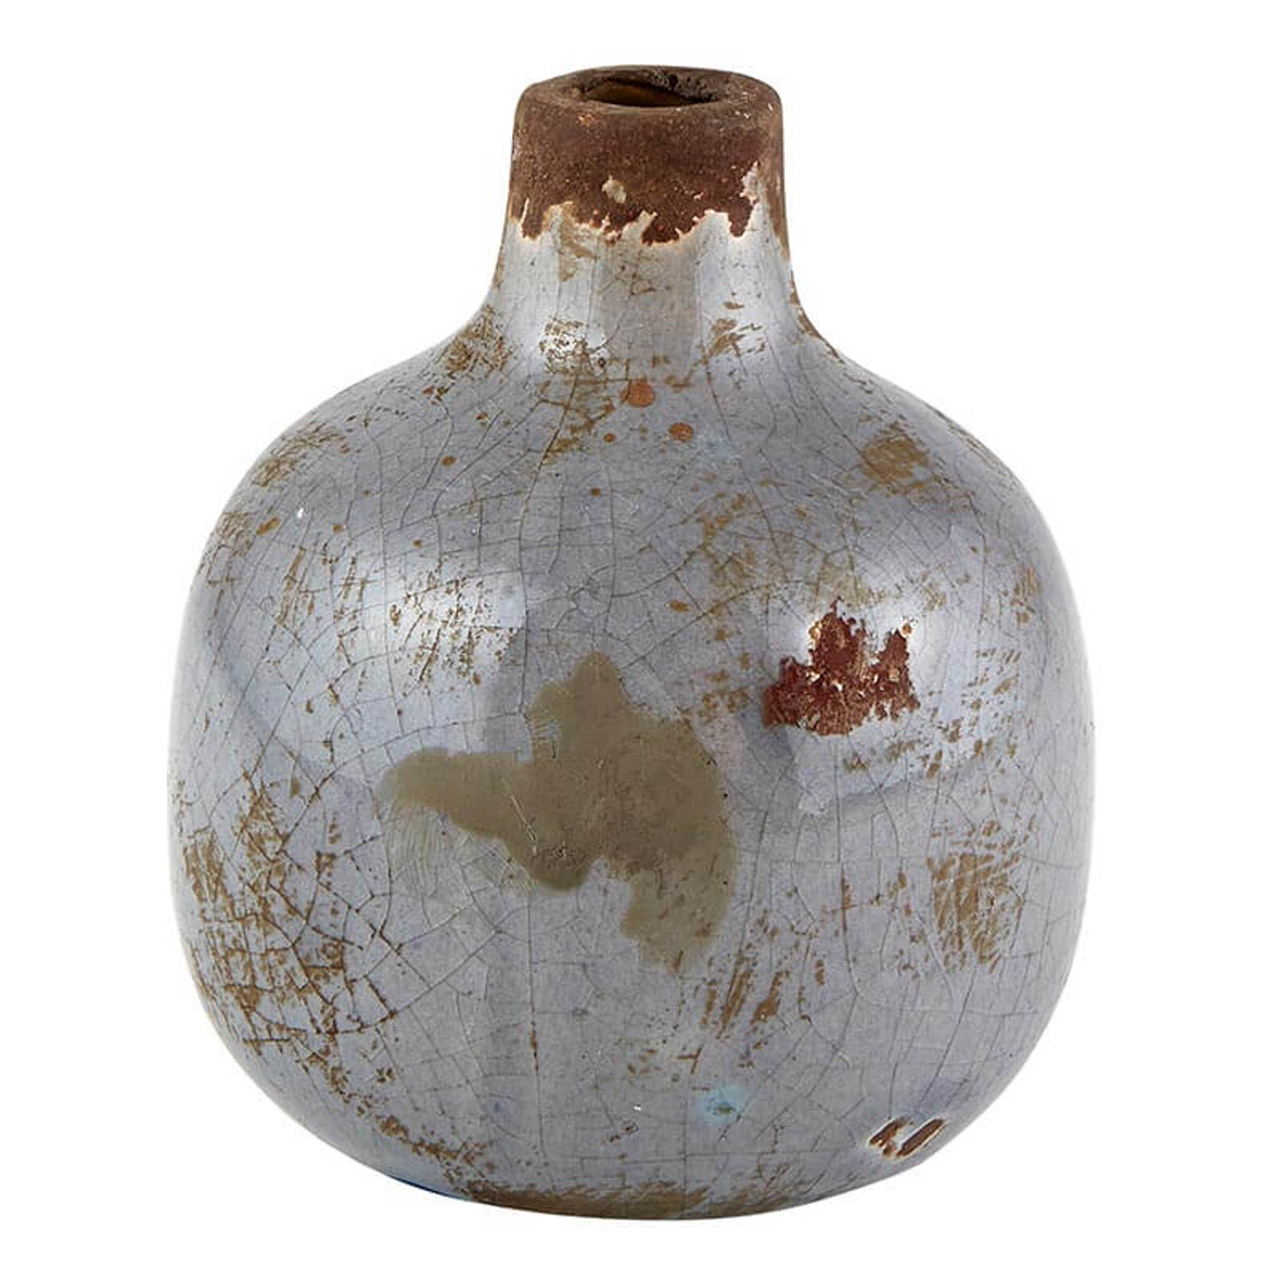 """This distressed glazed ceramic bud vase will be a sweet addition to any desk or tabletop. 3.25"""" Dia x 3.75"""" H; approx 5/8"""" opening."""